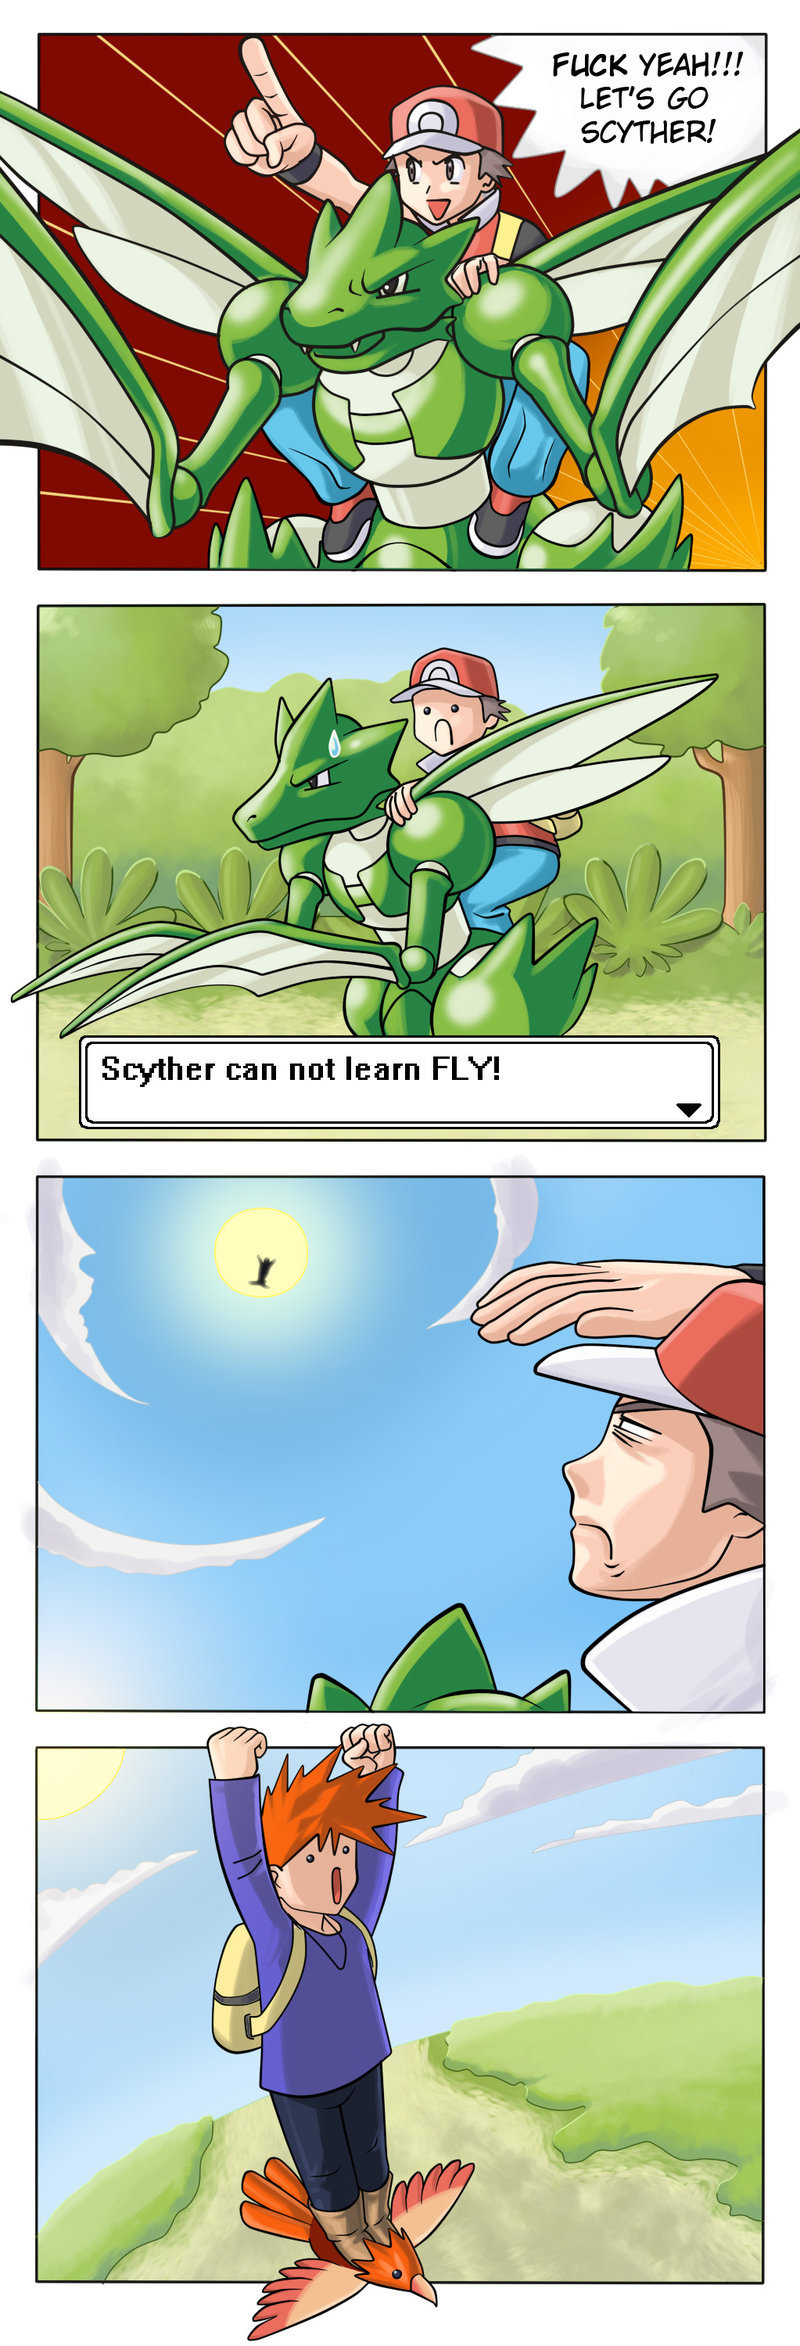 sycther fly